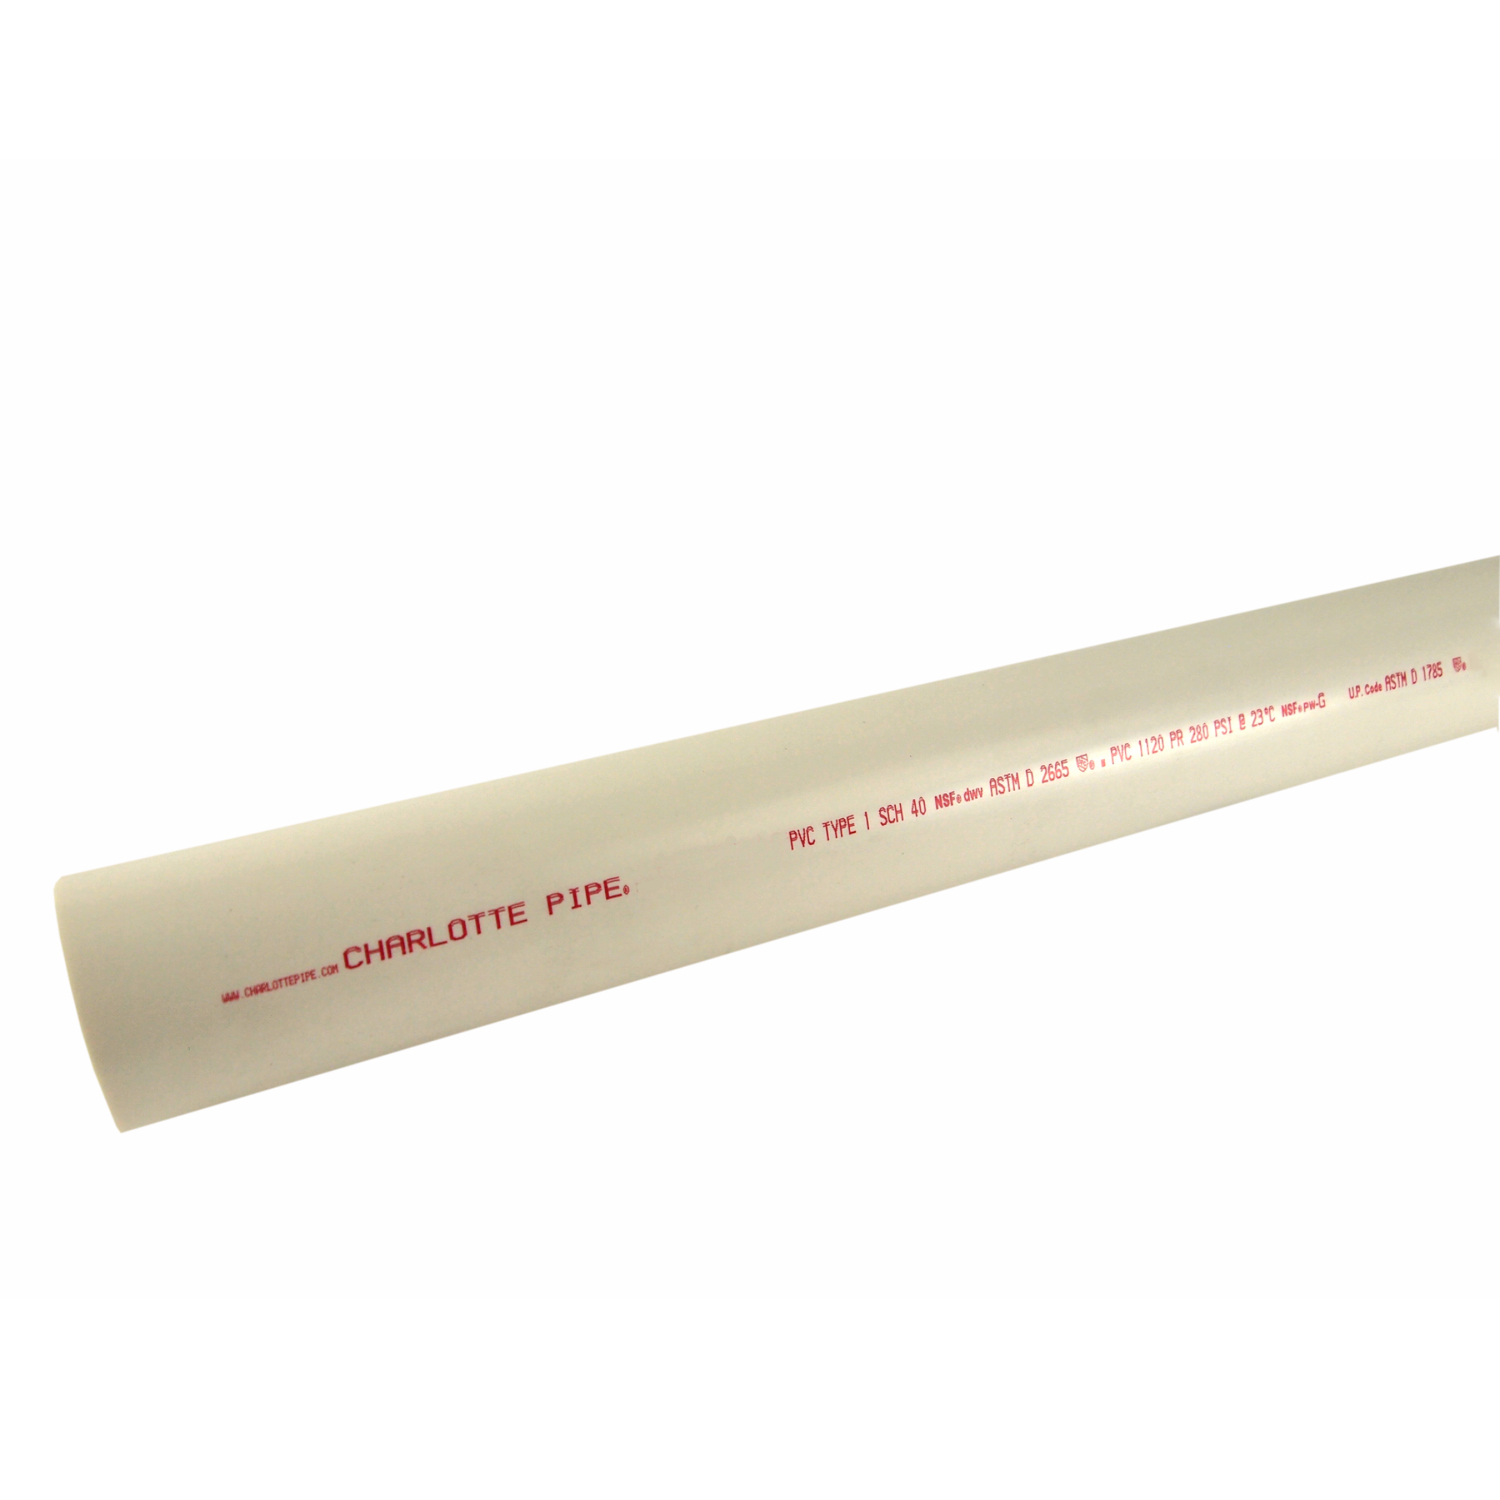 Charlotte Pipe  PVC DWV Pipe  3 in. Dia. x 10 ft. L Plain End  Schedule 40  260 psi